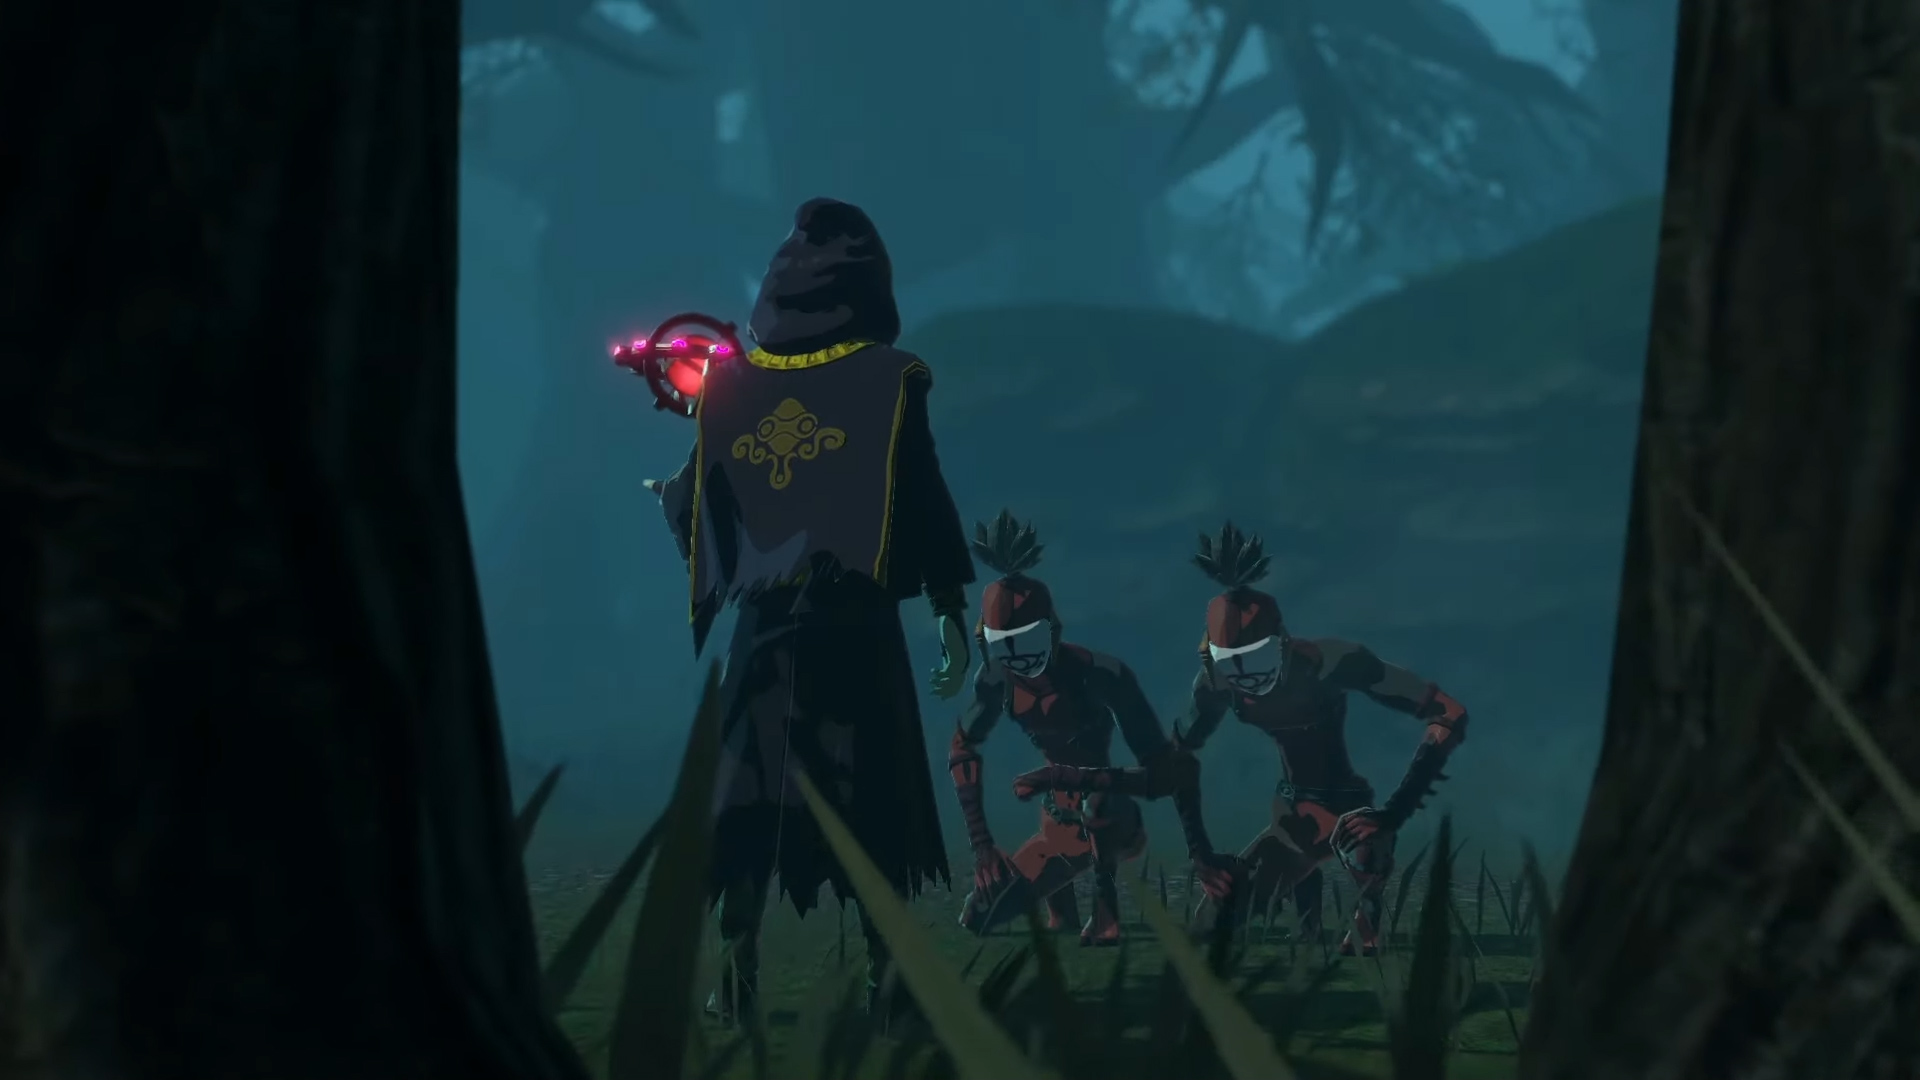 New Hyrule Warrior Age Of Calamity Trailer Shows The Yiga Clan And New Ominous Figure Vooks